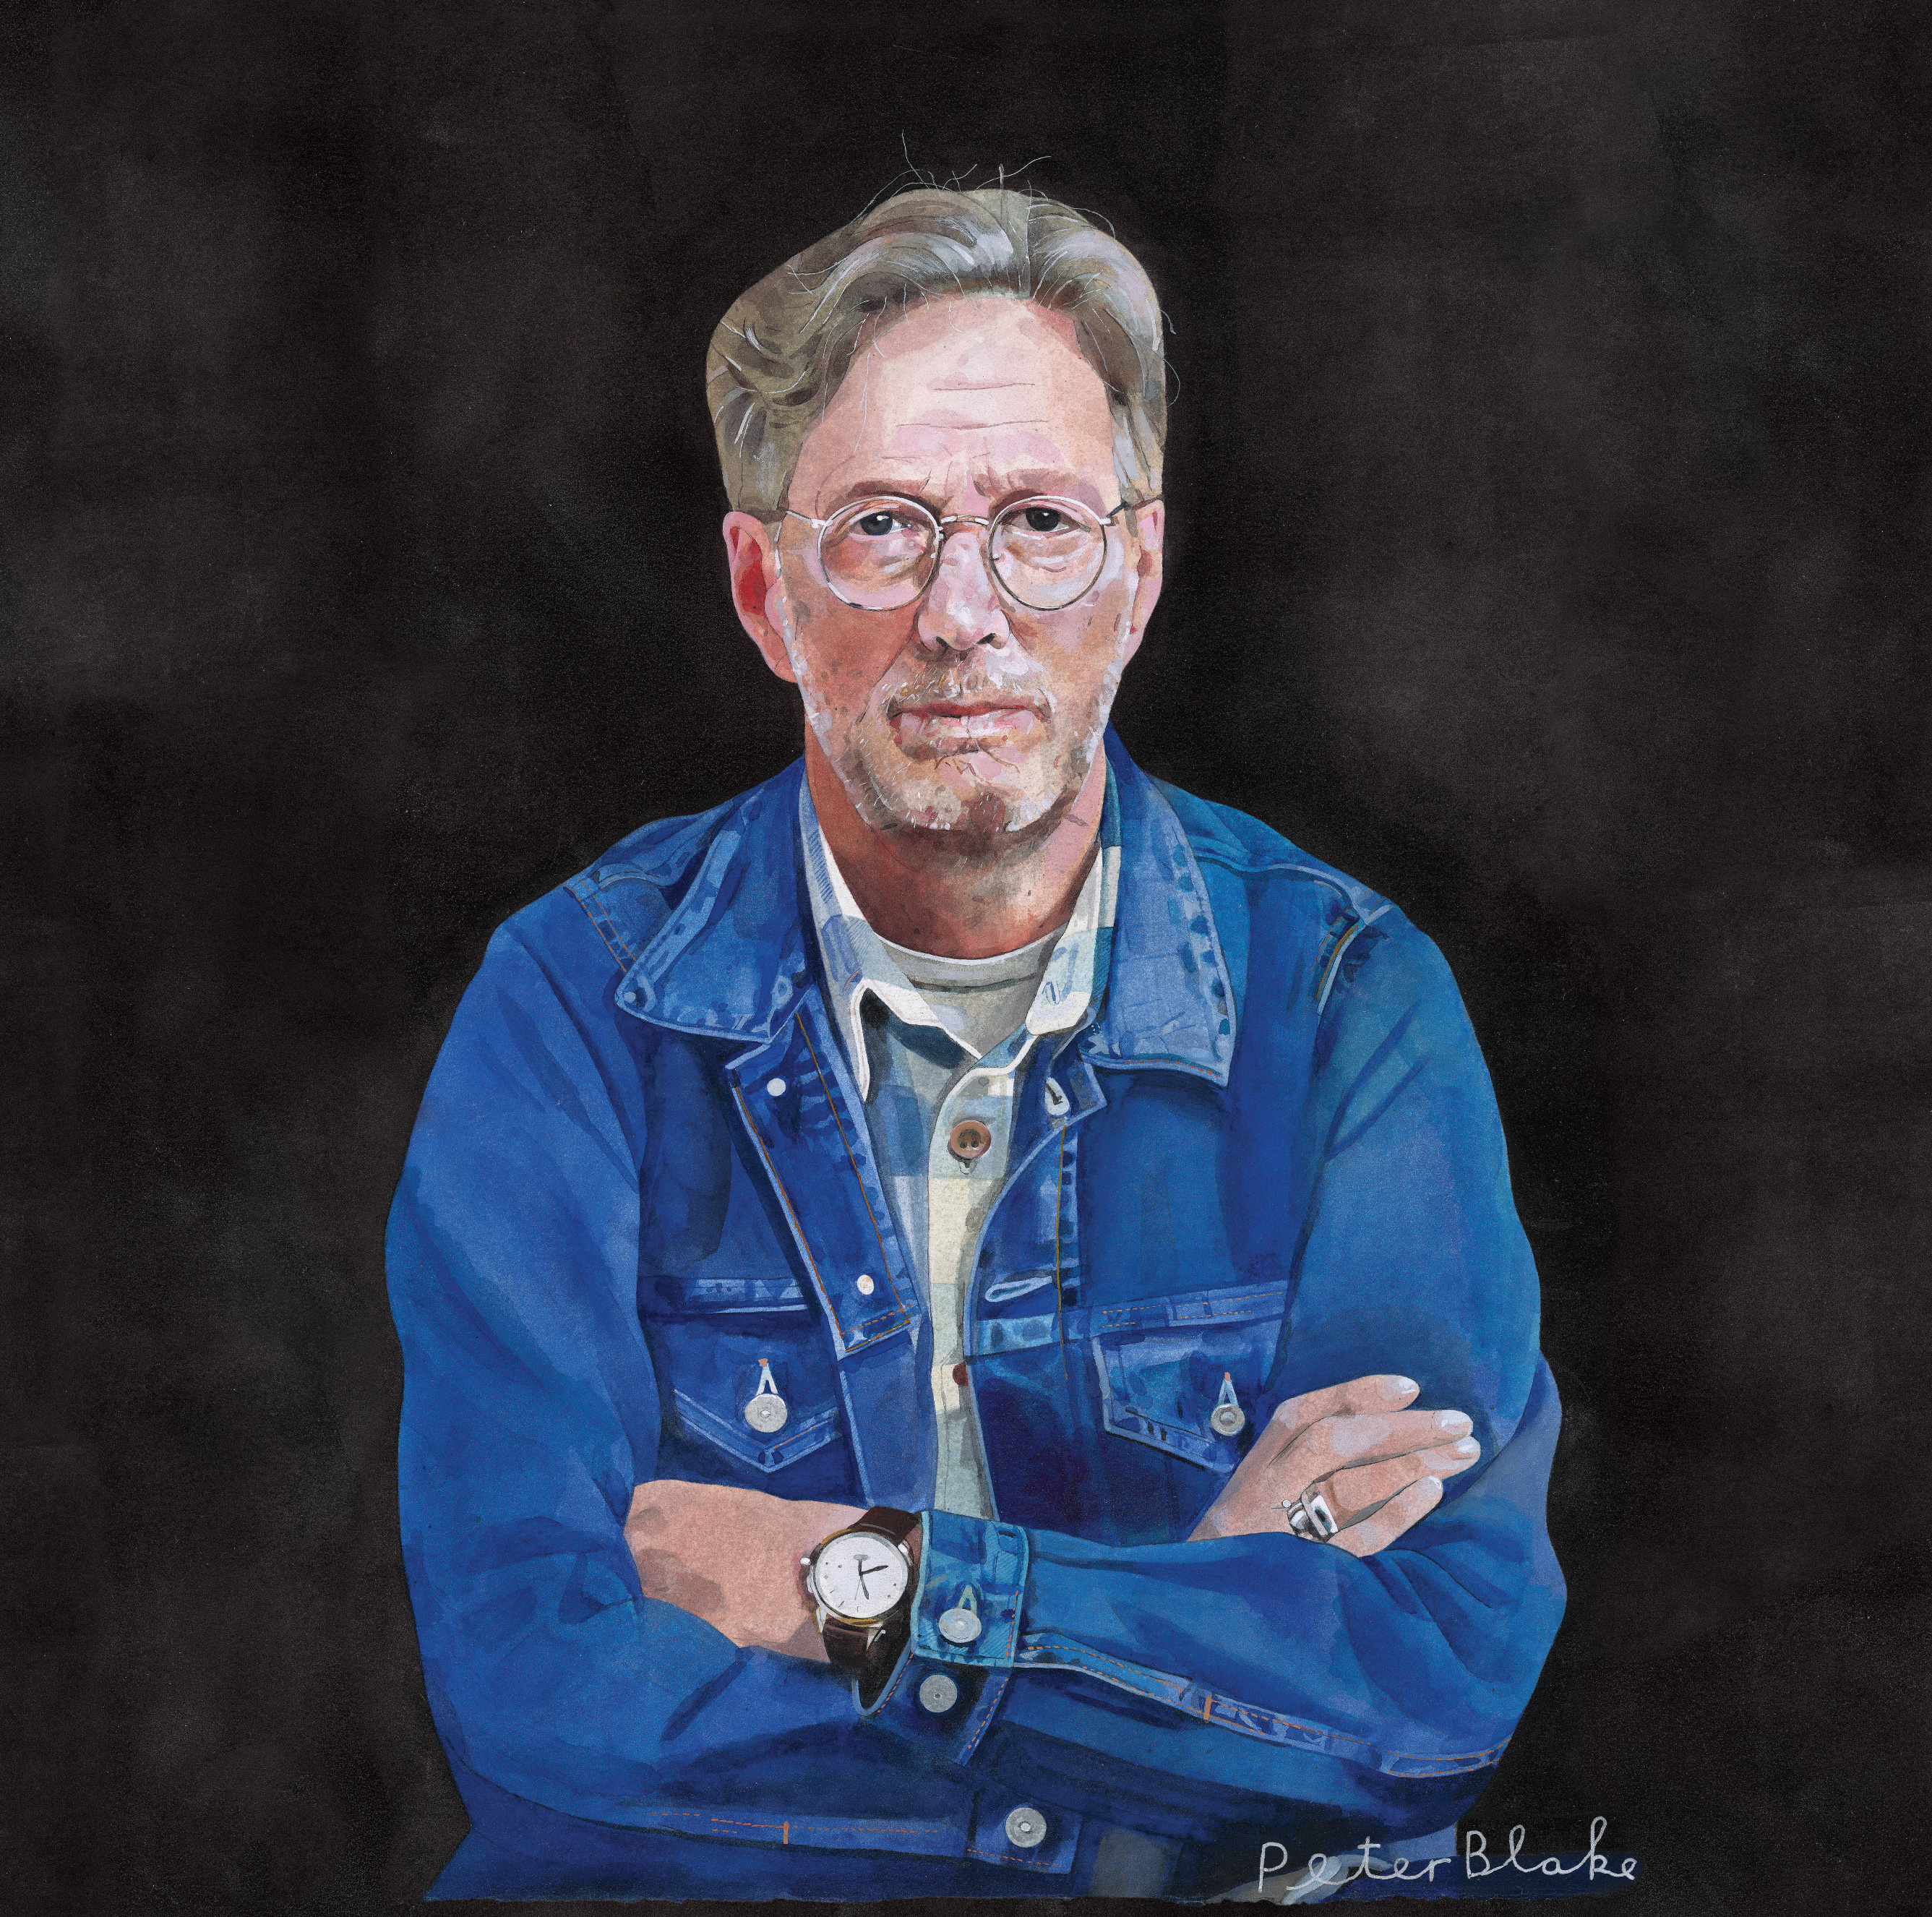 Eric Clapton's I Still Do: Ten Things To Know